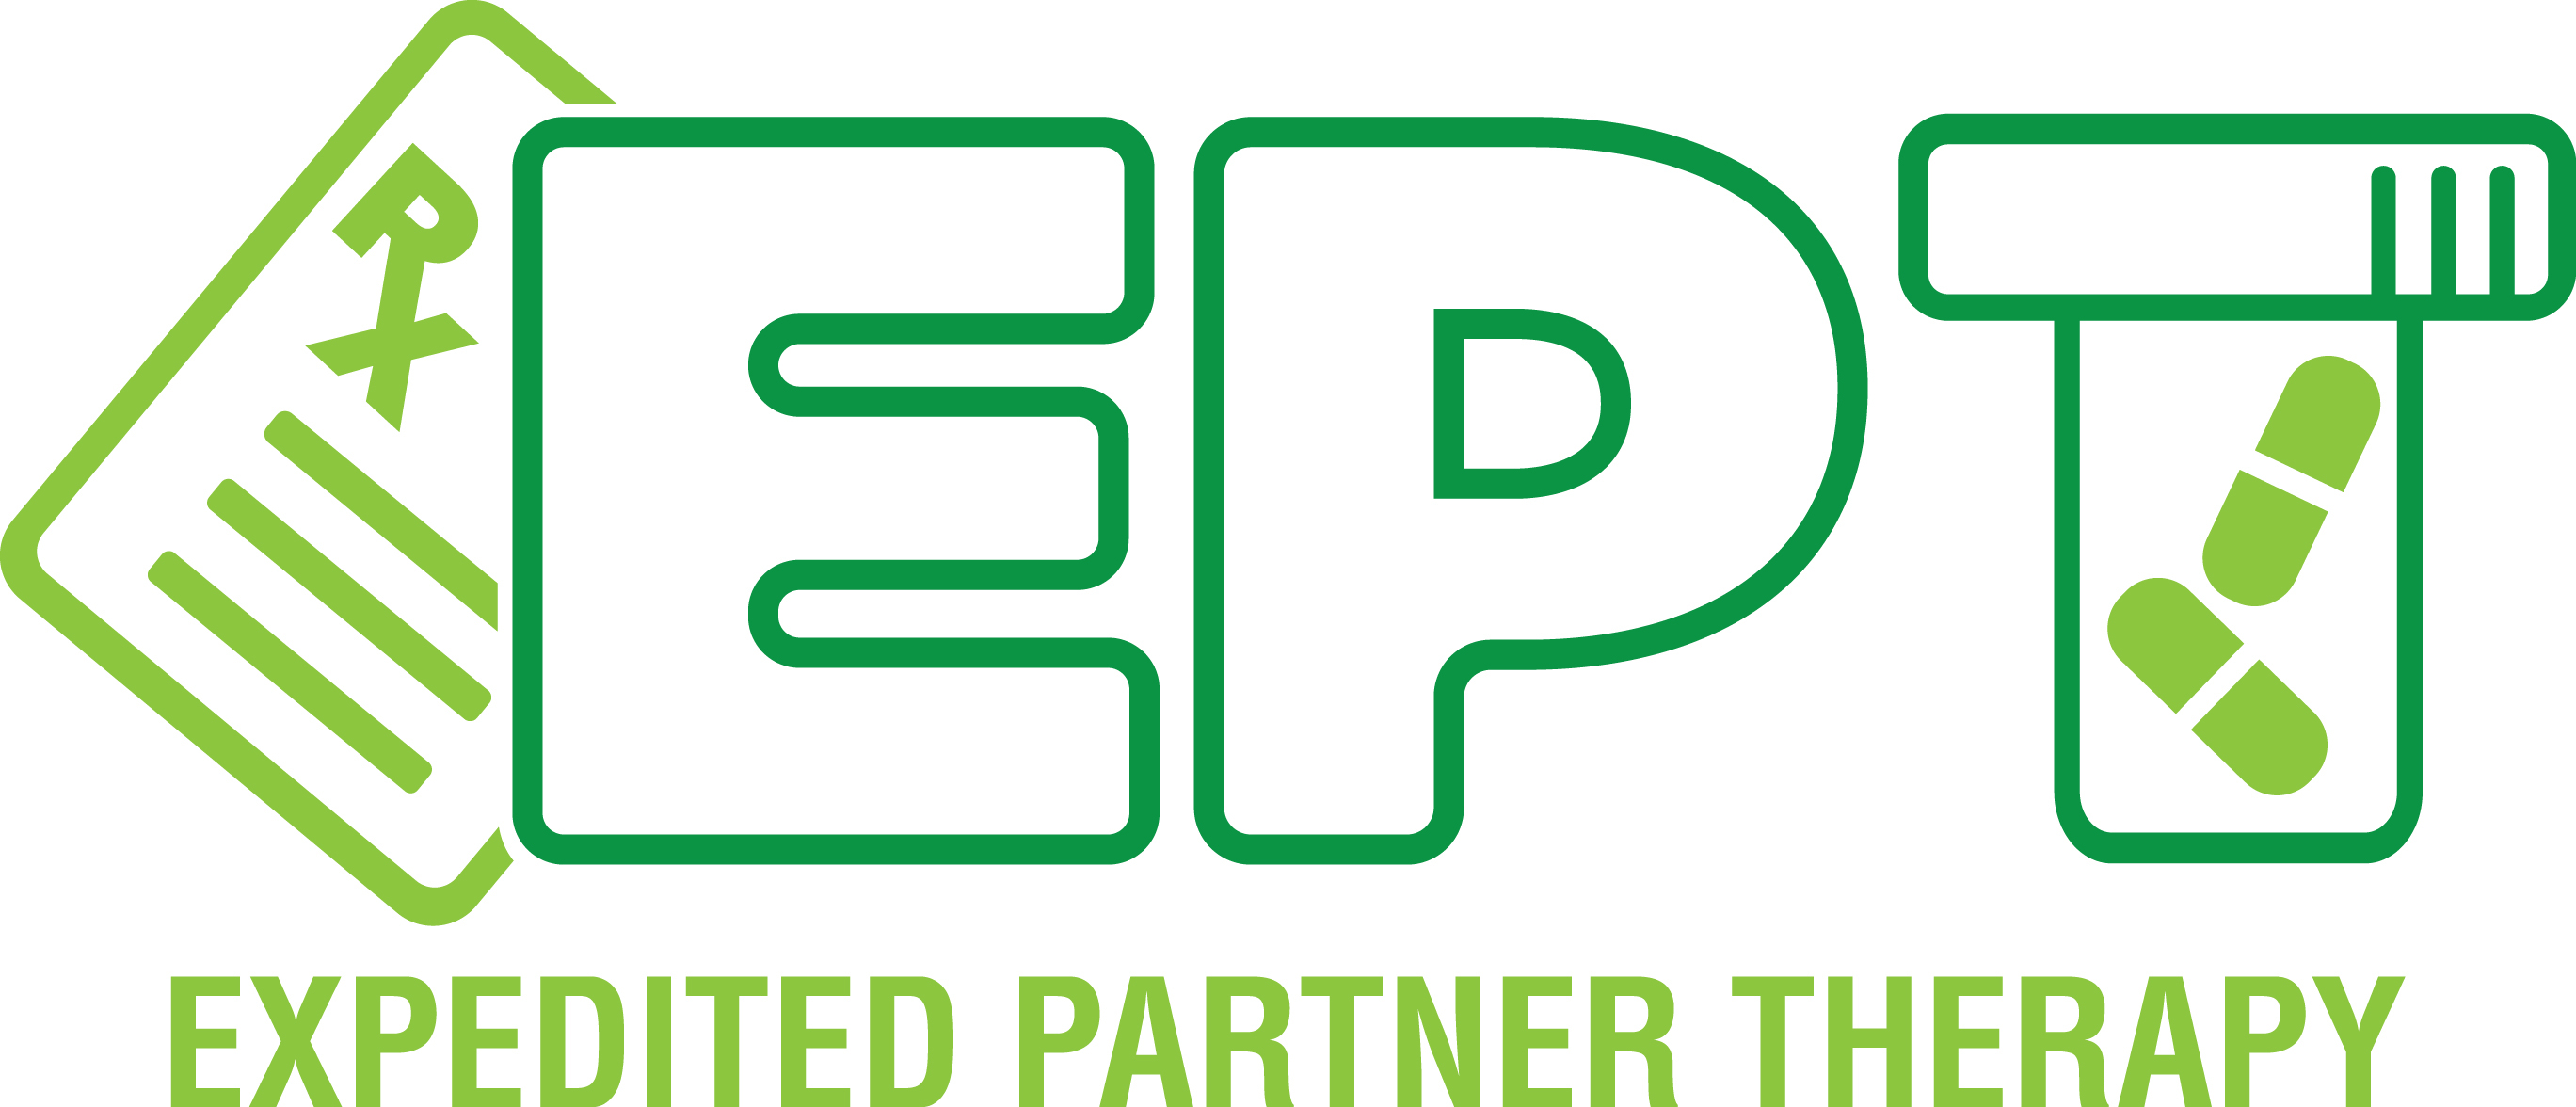 Expidited Partner Therapy logo